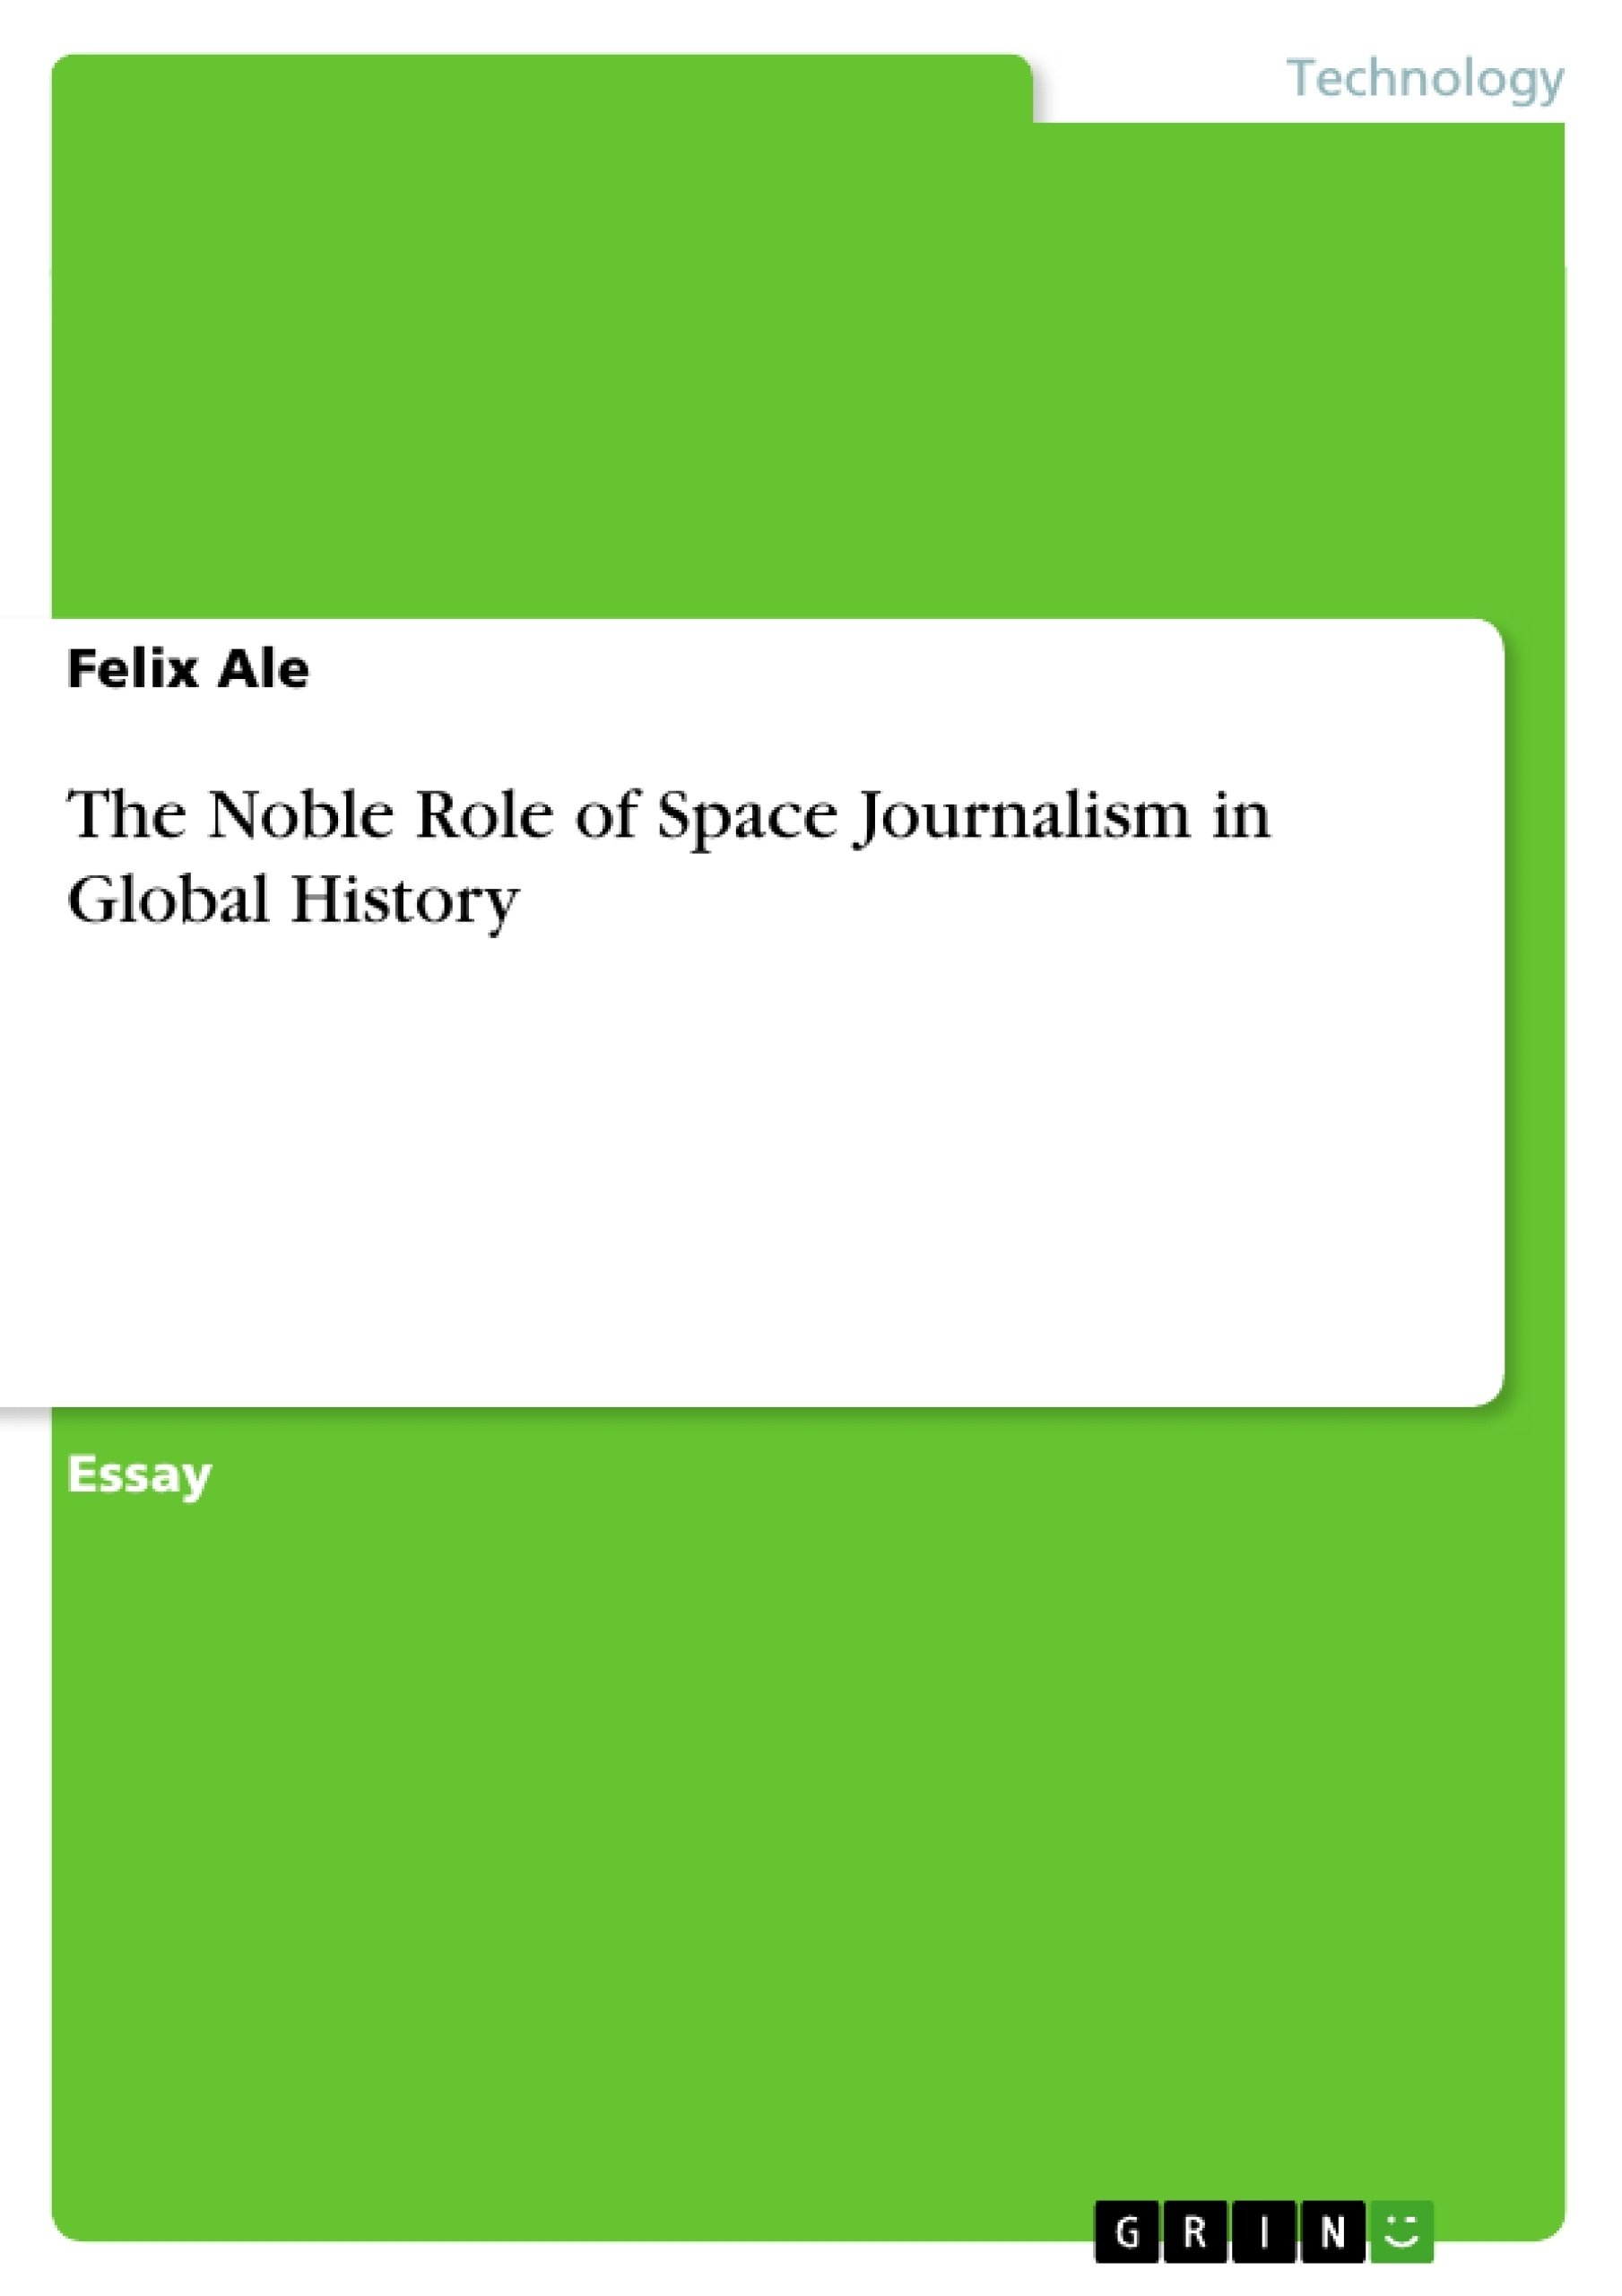 Title: The Noble Role of Space Journalism in Global History